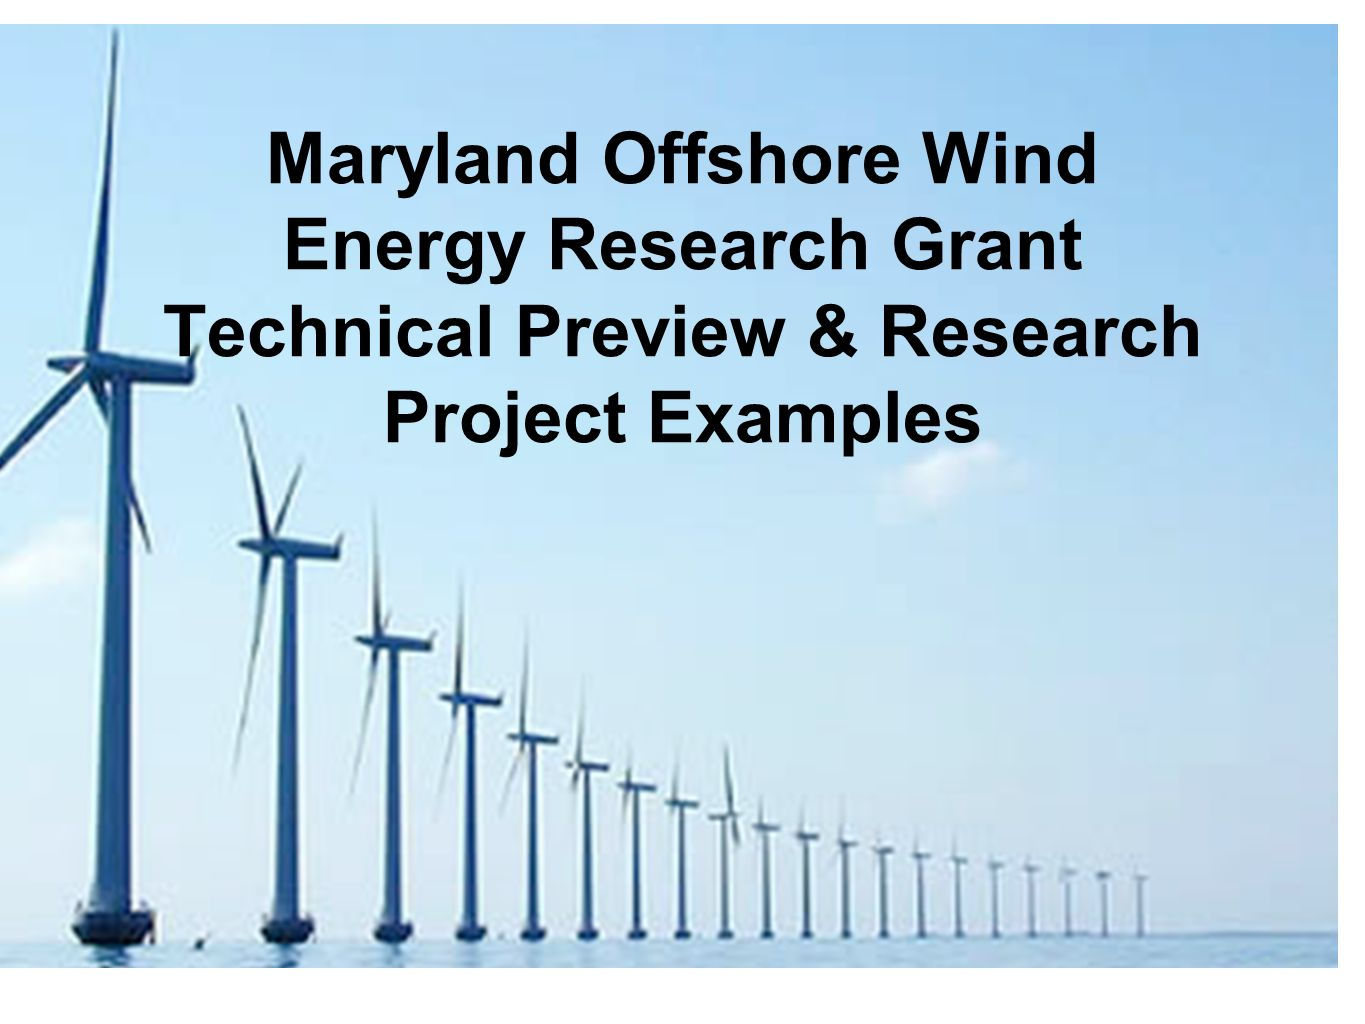 Maryland Offshore Wind Energy Research Grant Technical Preview & Research Project Examples